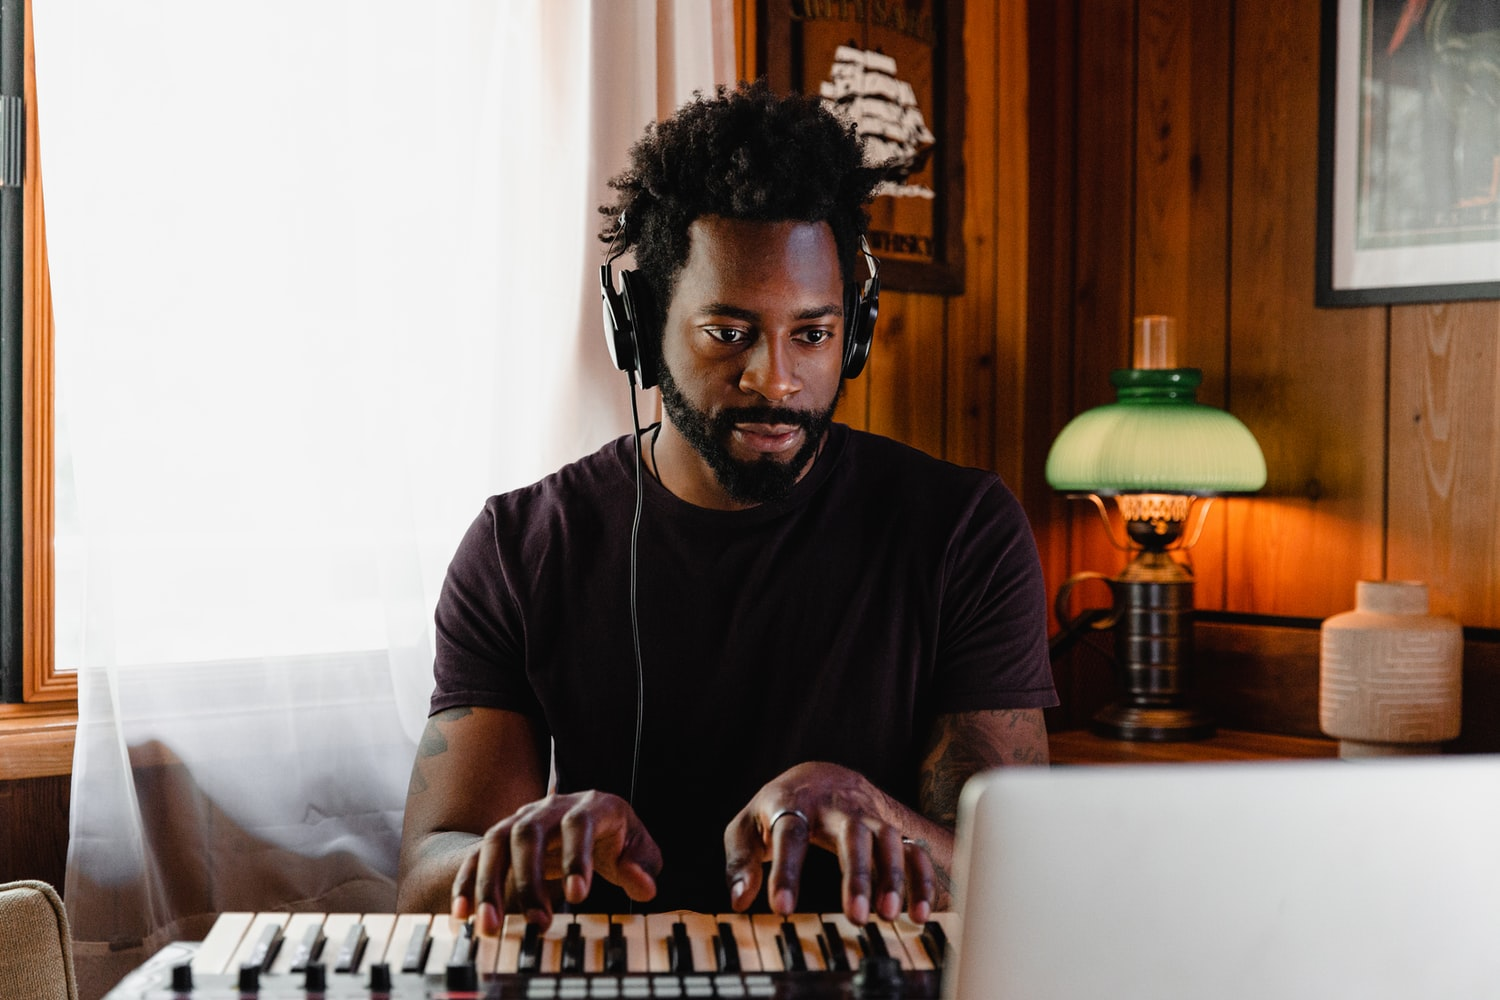 Man with headphones playing keyboard in front of computer.